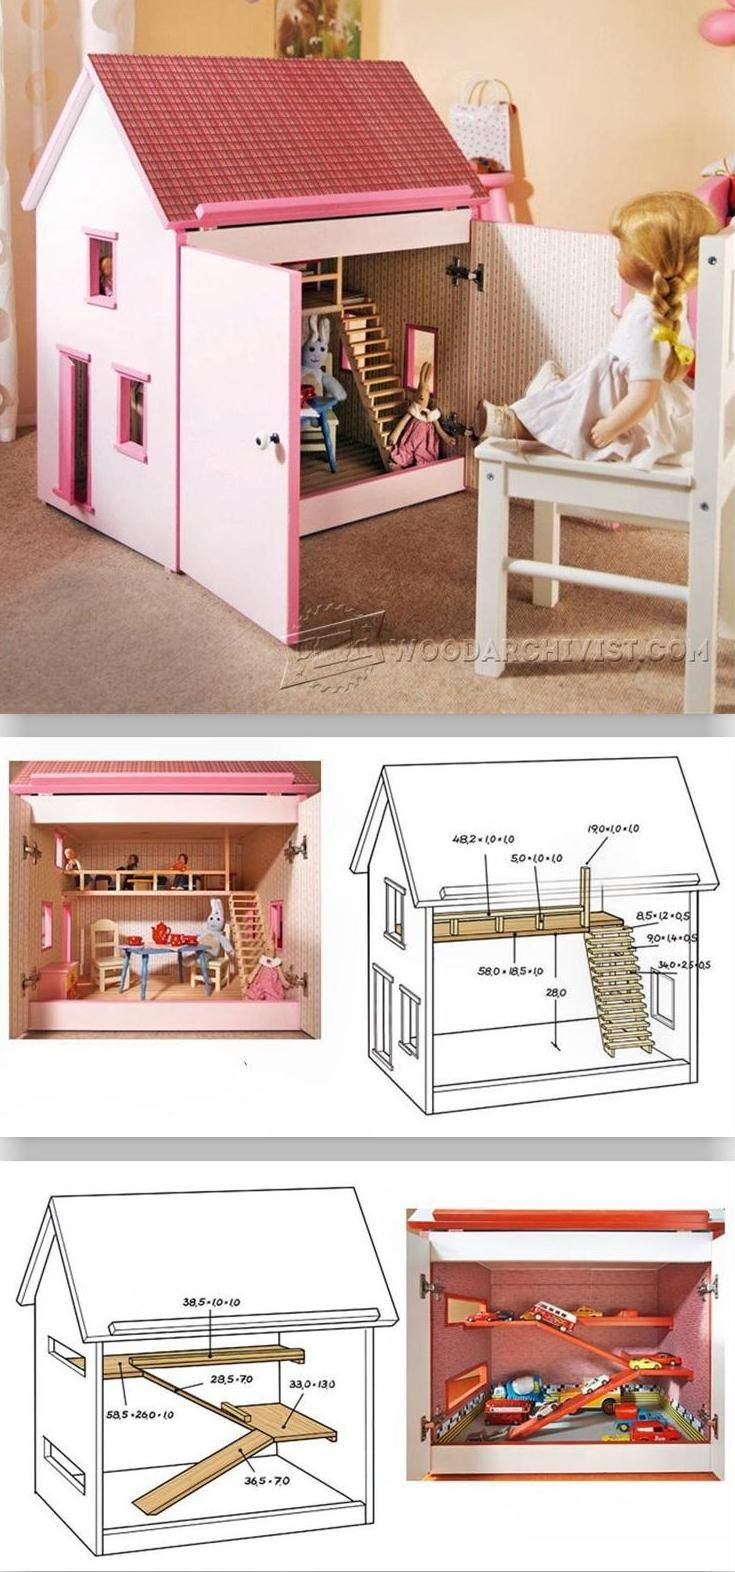 wooden doll house plans - wooden toy plans and projects